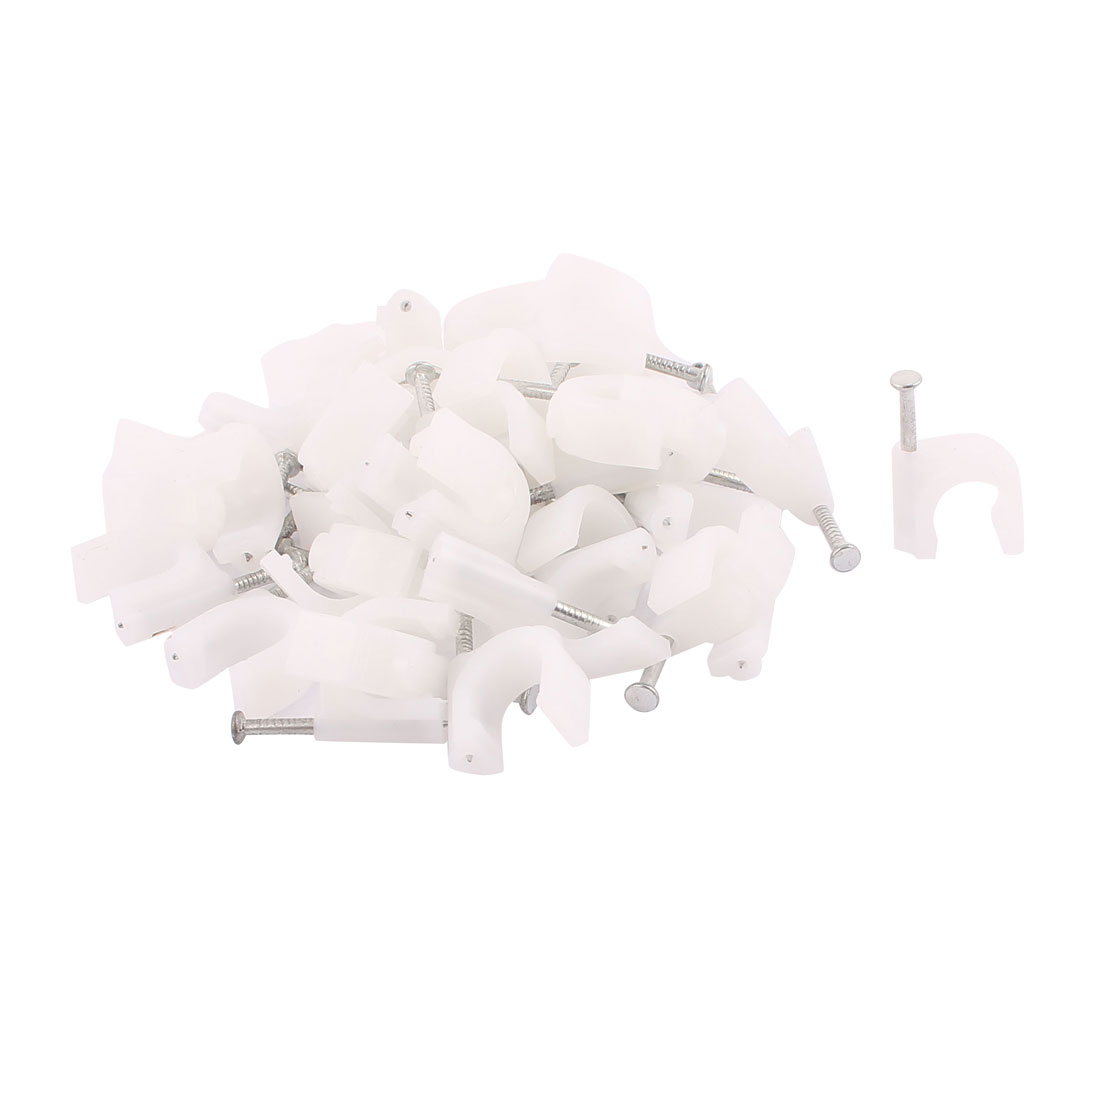 40 Pcs 9mm Diameter Coax Cable Inserting Circle Nail Clips White